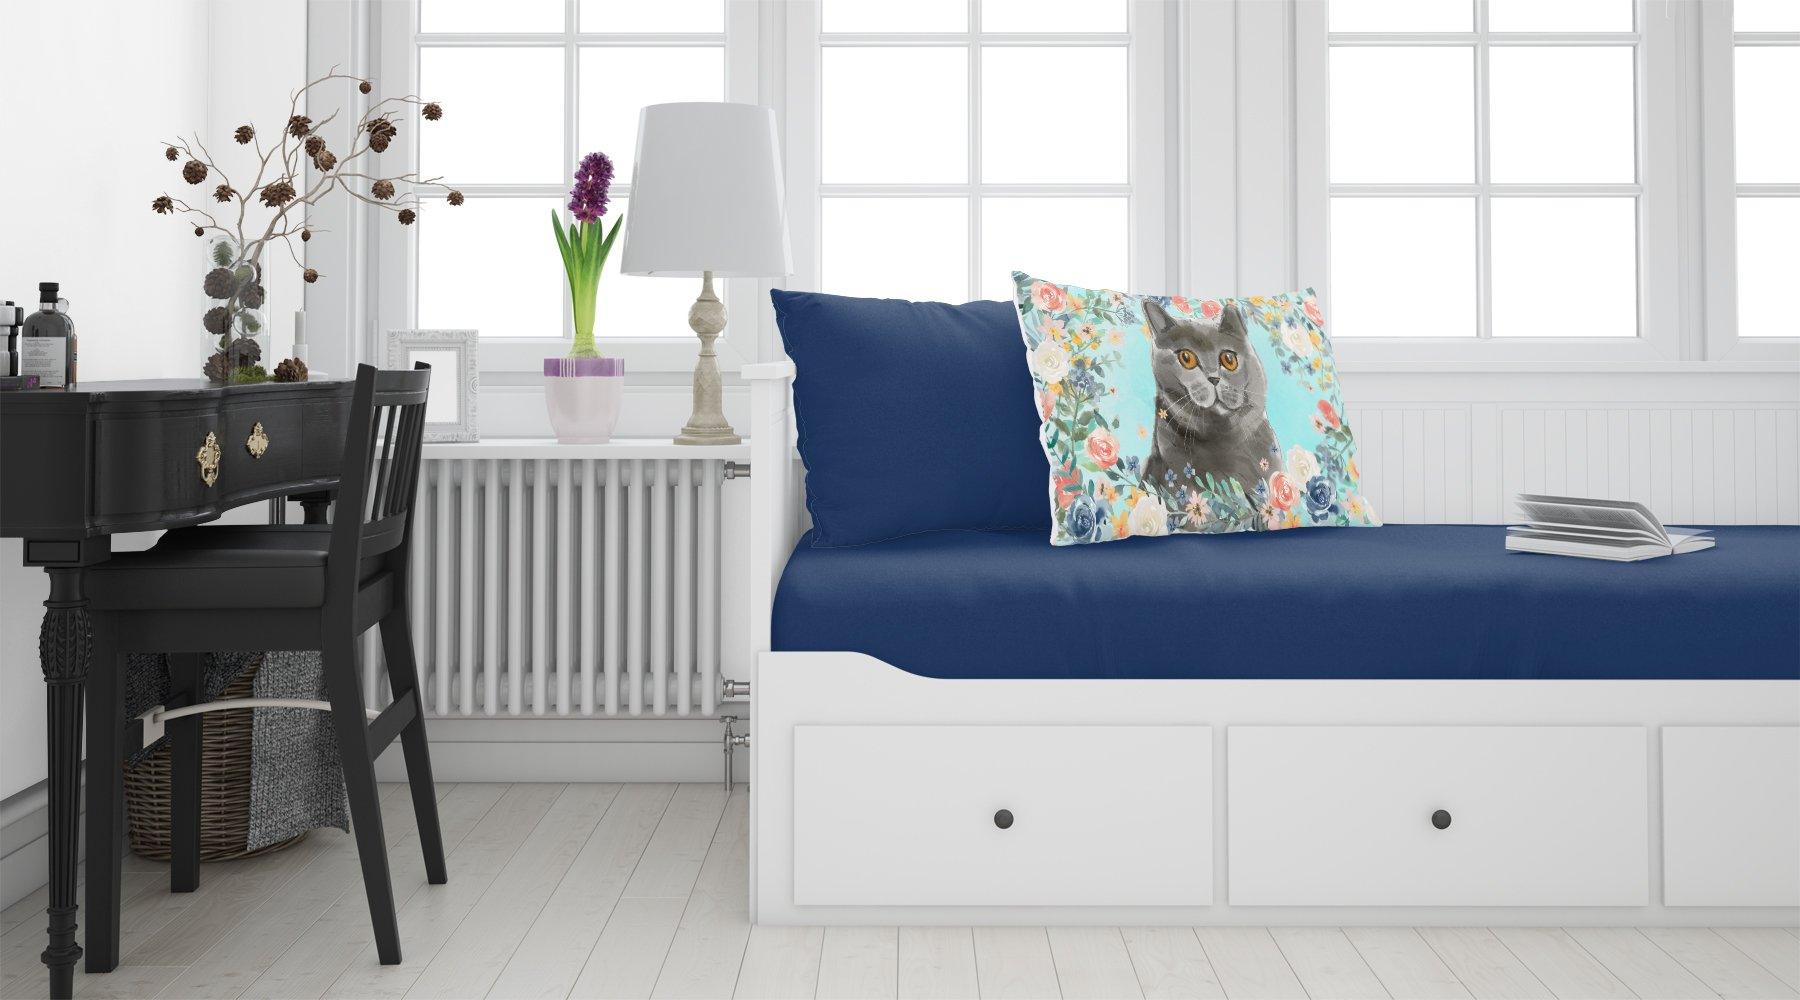 British Shorthair Spring Flowers Fabric Standard Pillowcase CK3392PILLOWCASE by Caroline's Treasures